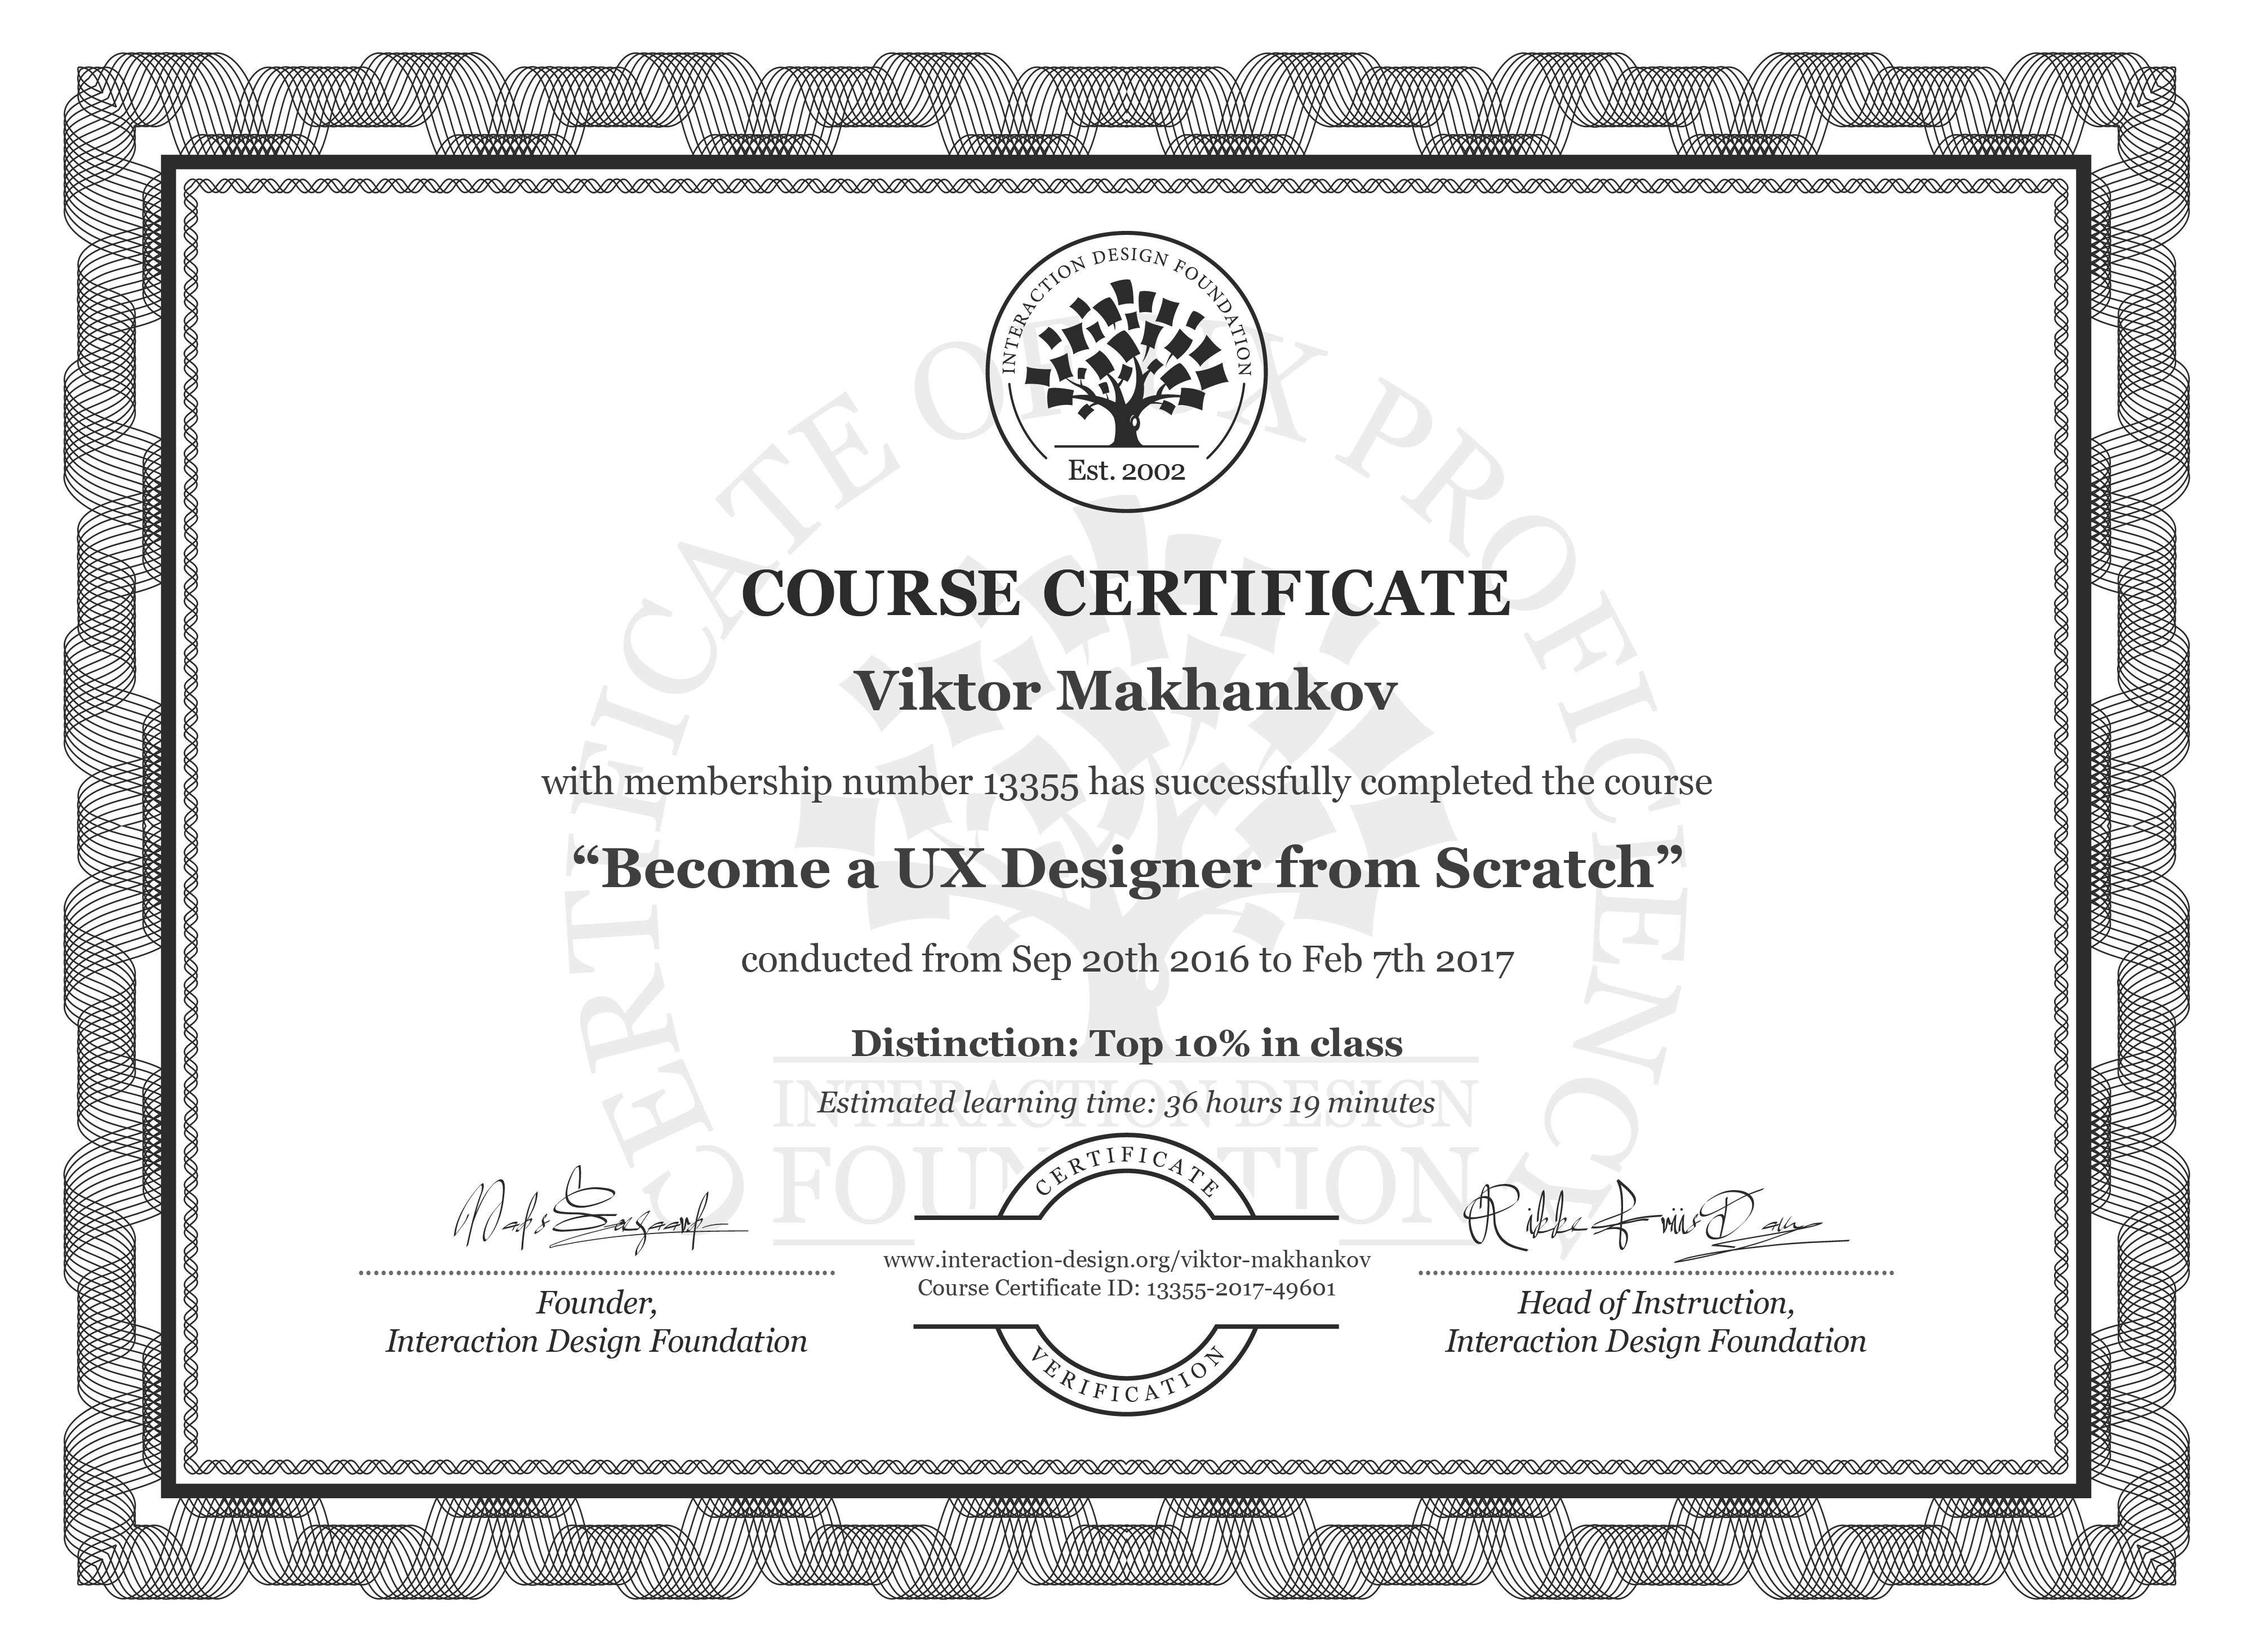 Viktor Makhankov: Course Certificate - Become a UX Designer from Scratch